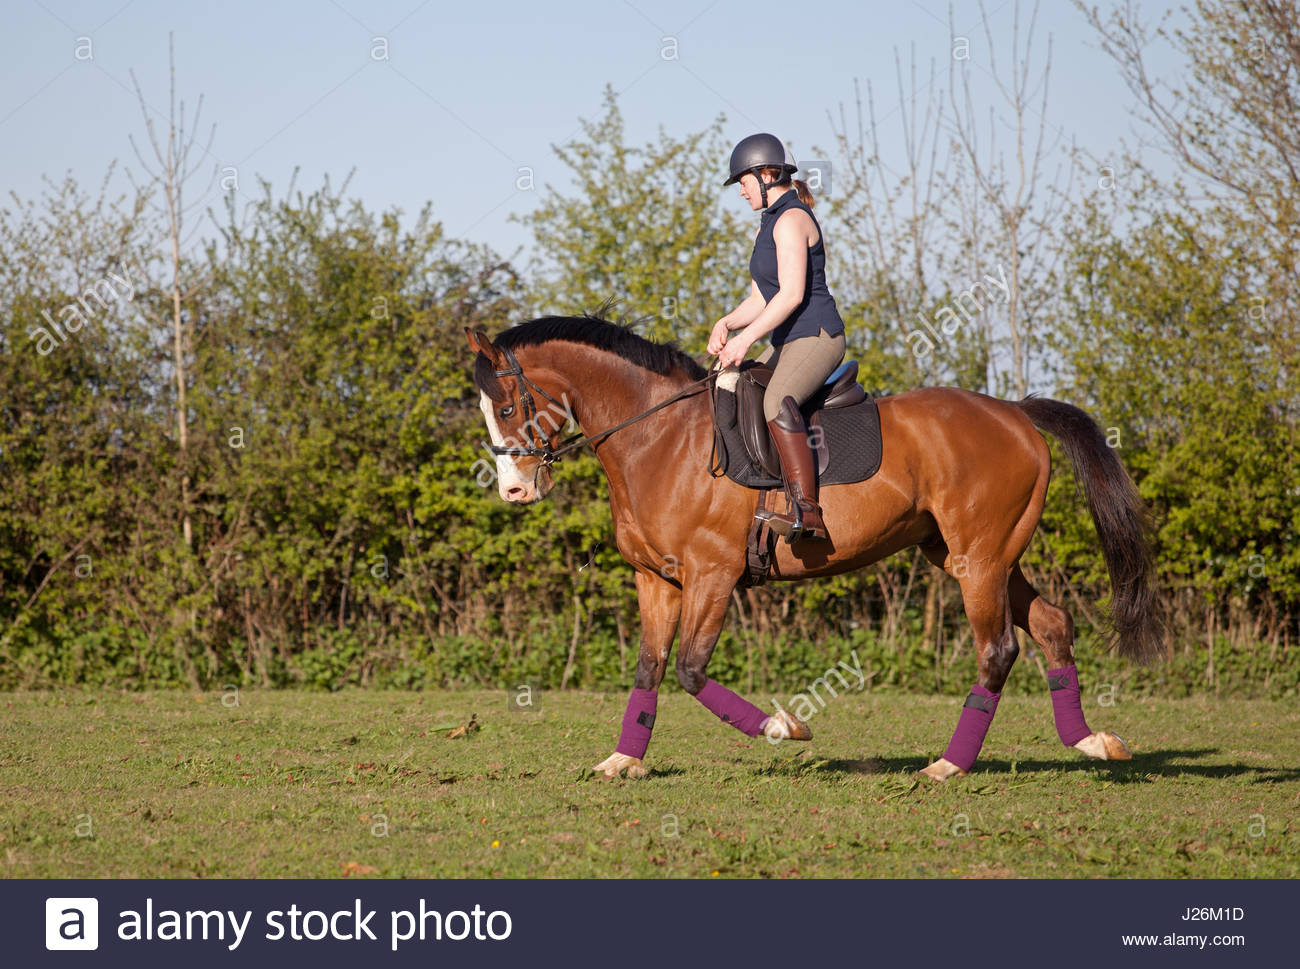 Schooling a horse in grass paddock UK Stock Photo